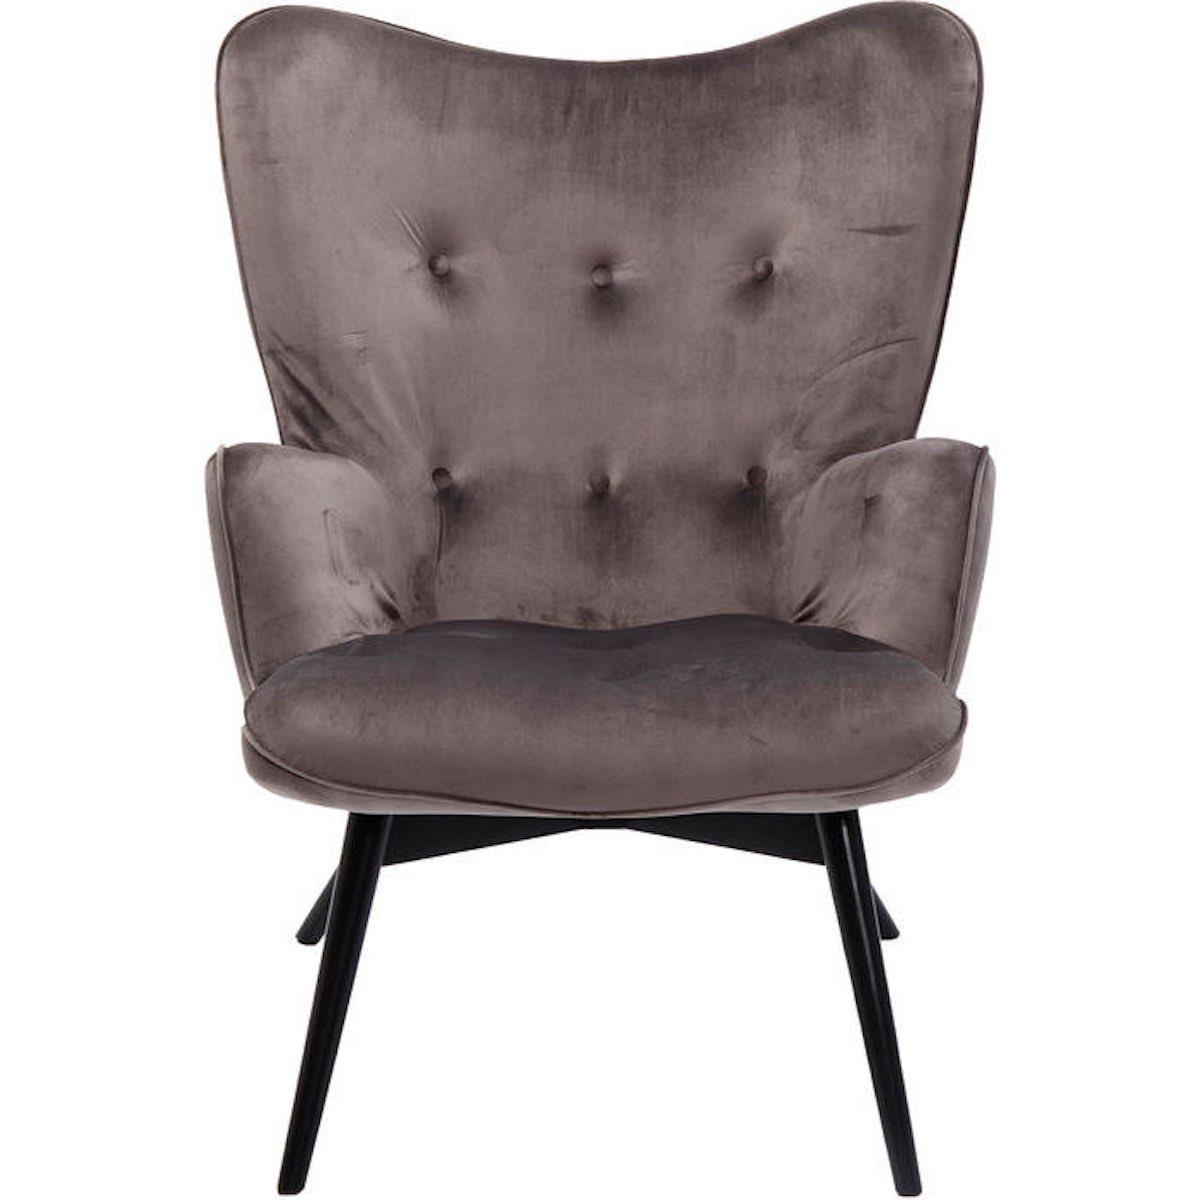 Fauteuil VICKY Kare Design velours gris